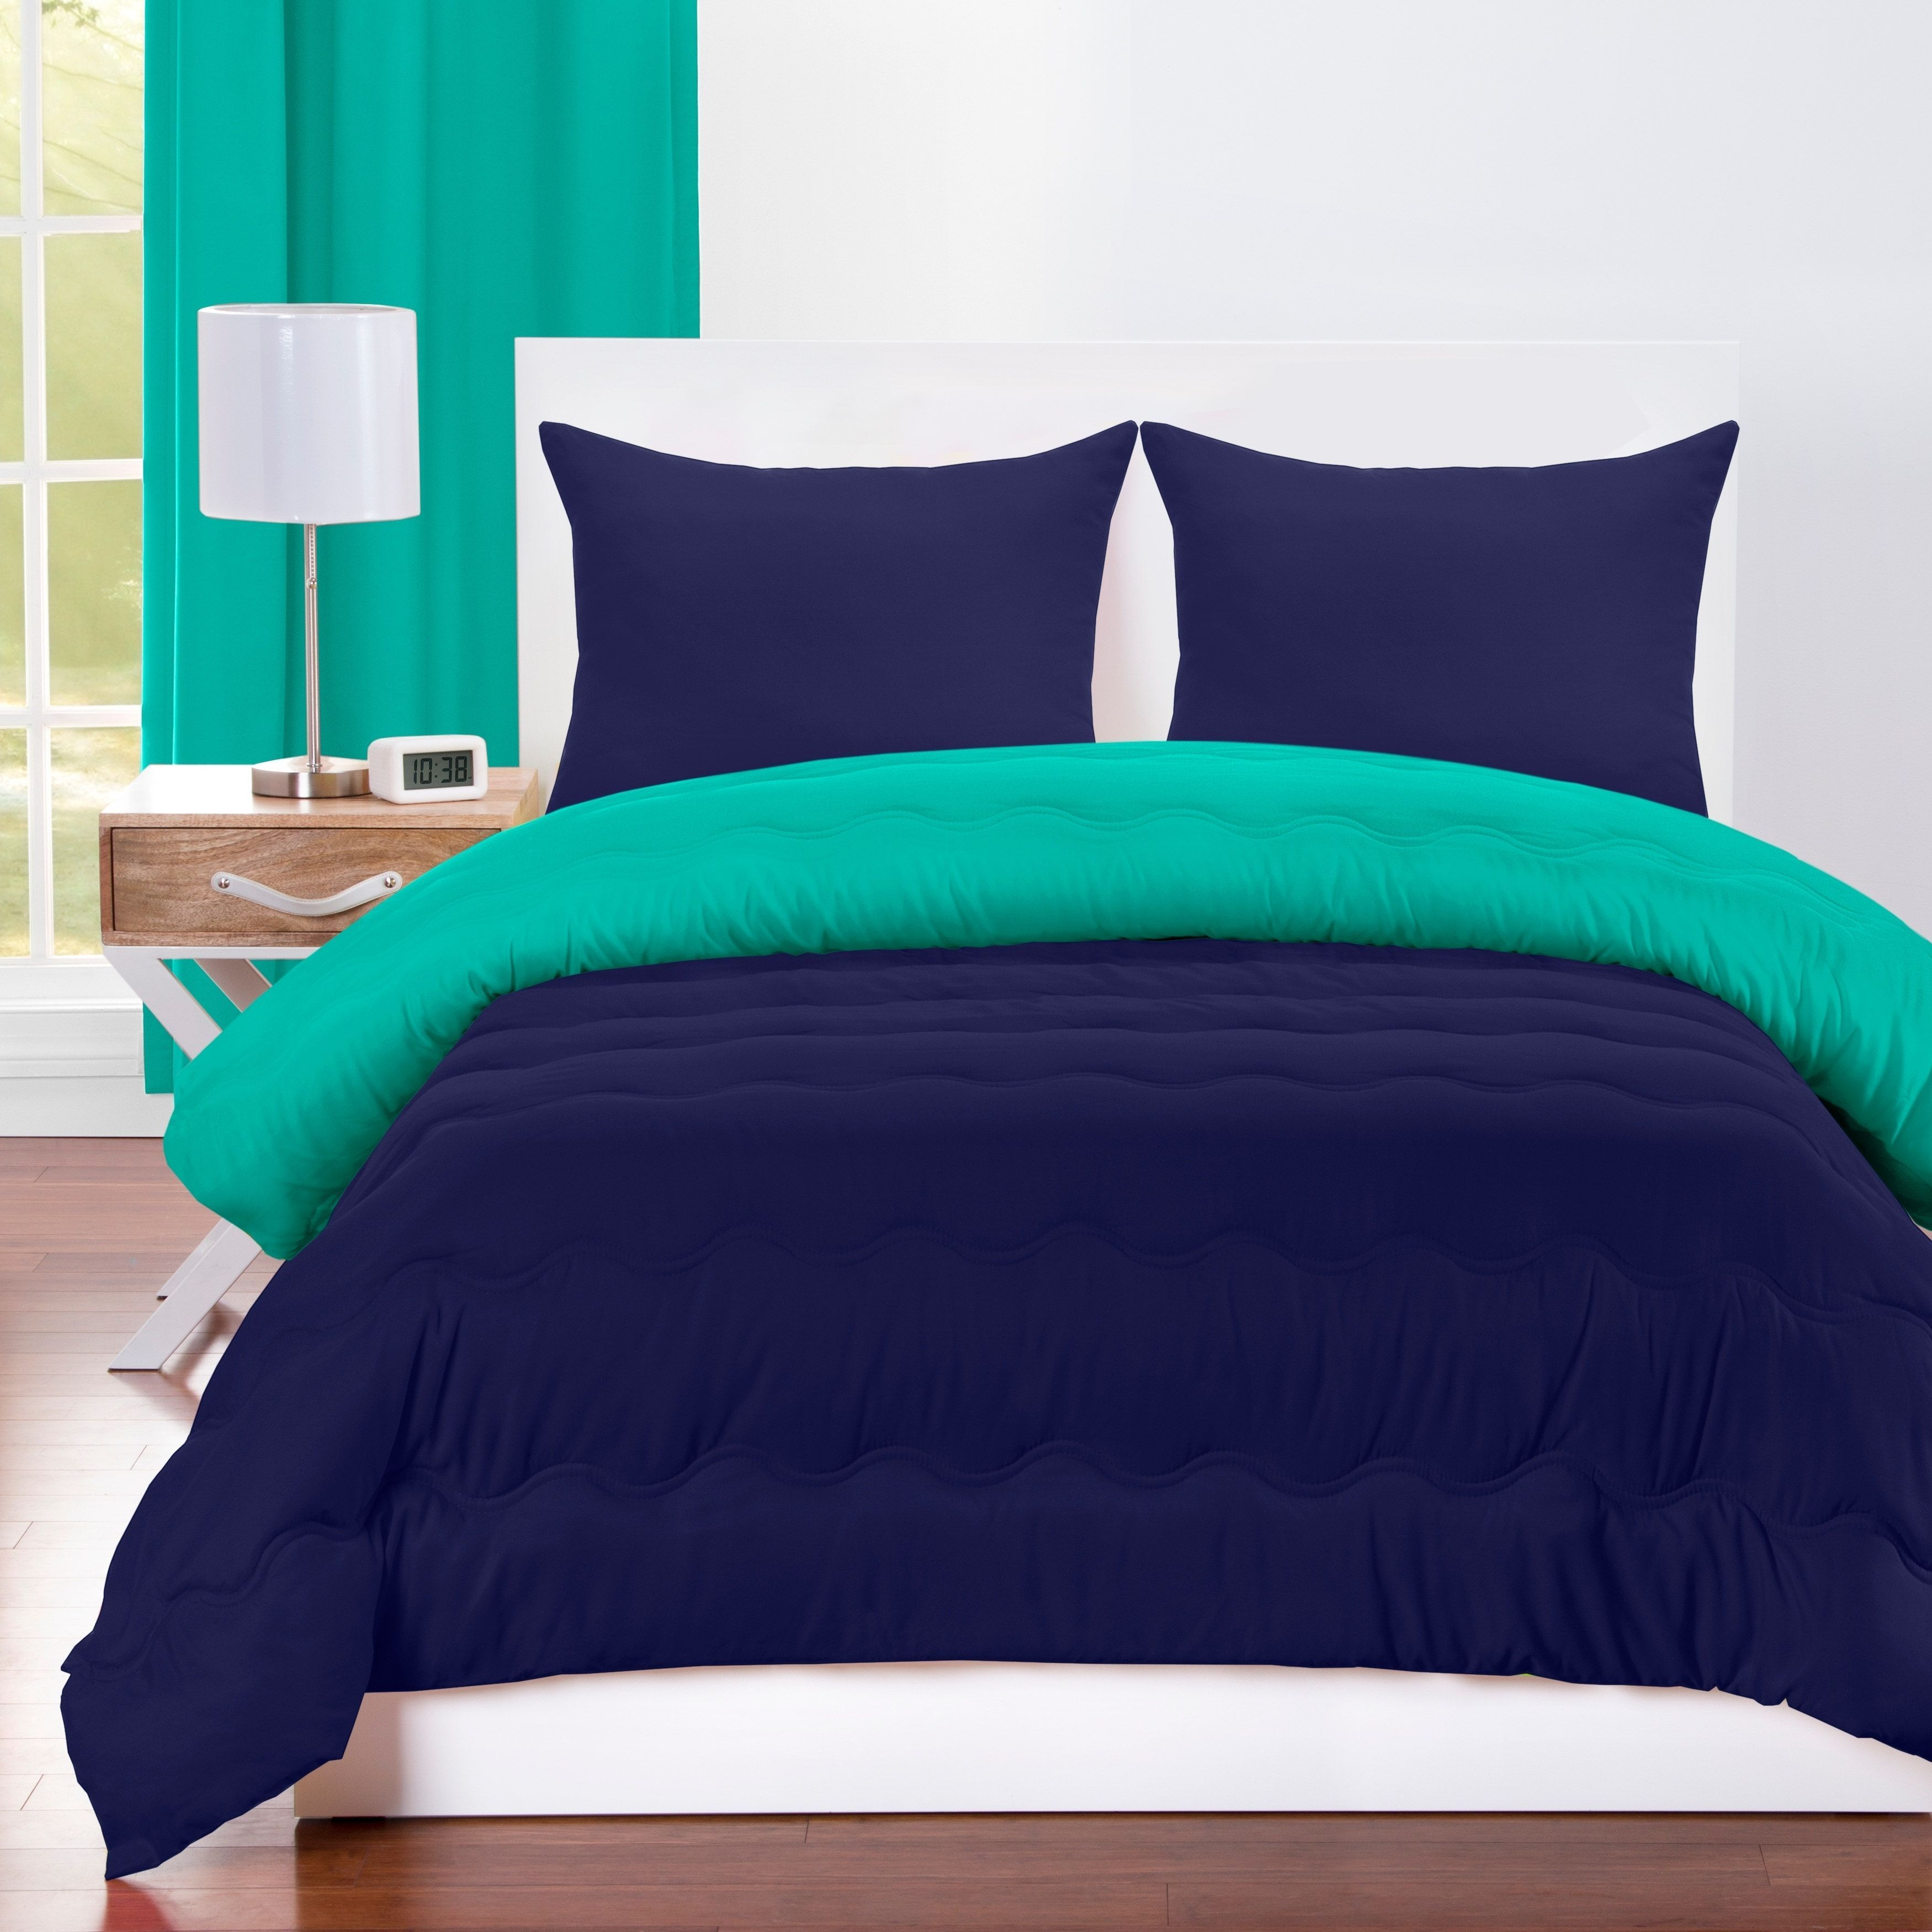 Crayola Blue Green And Navy Blue Reversible 3 Piece Comforter Set